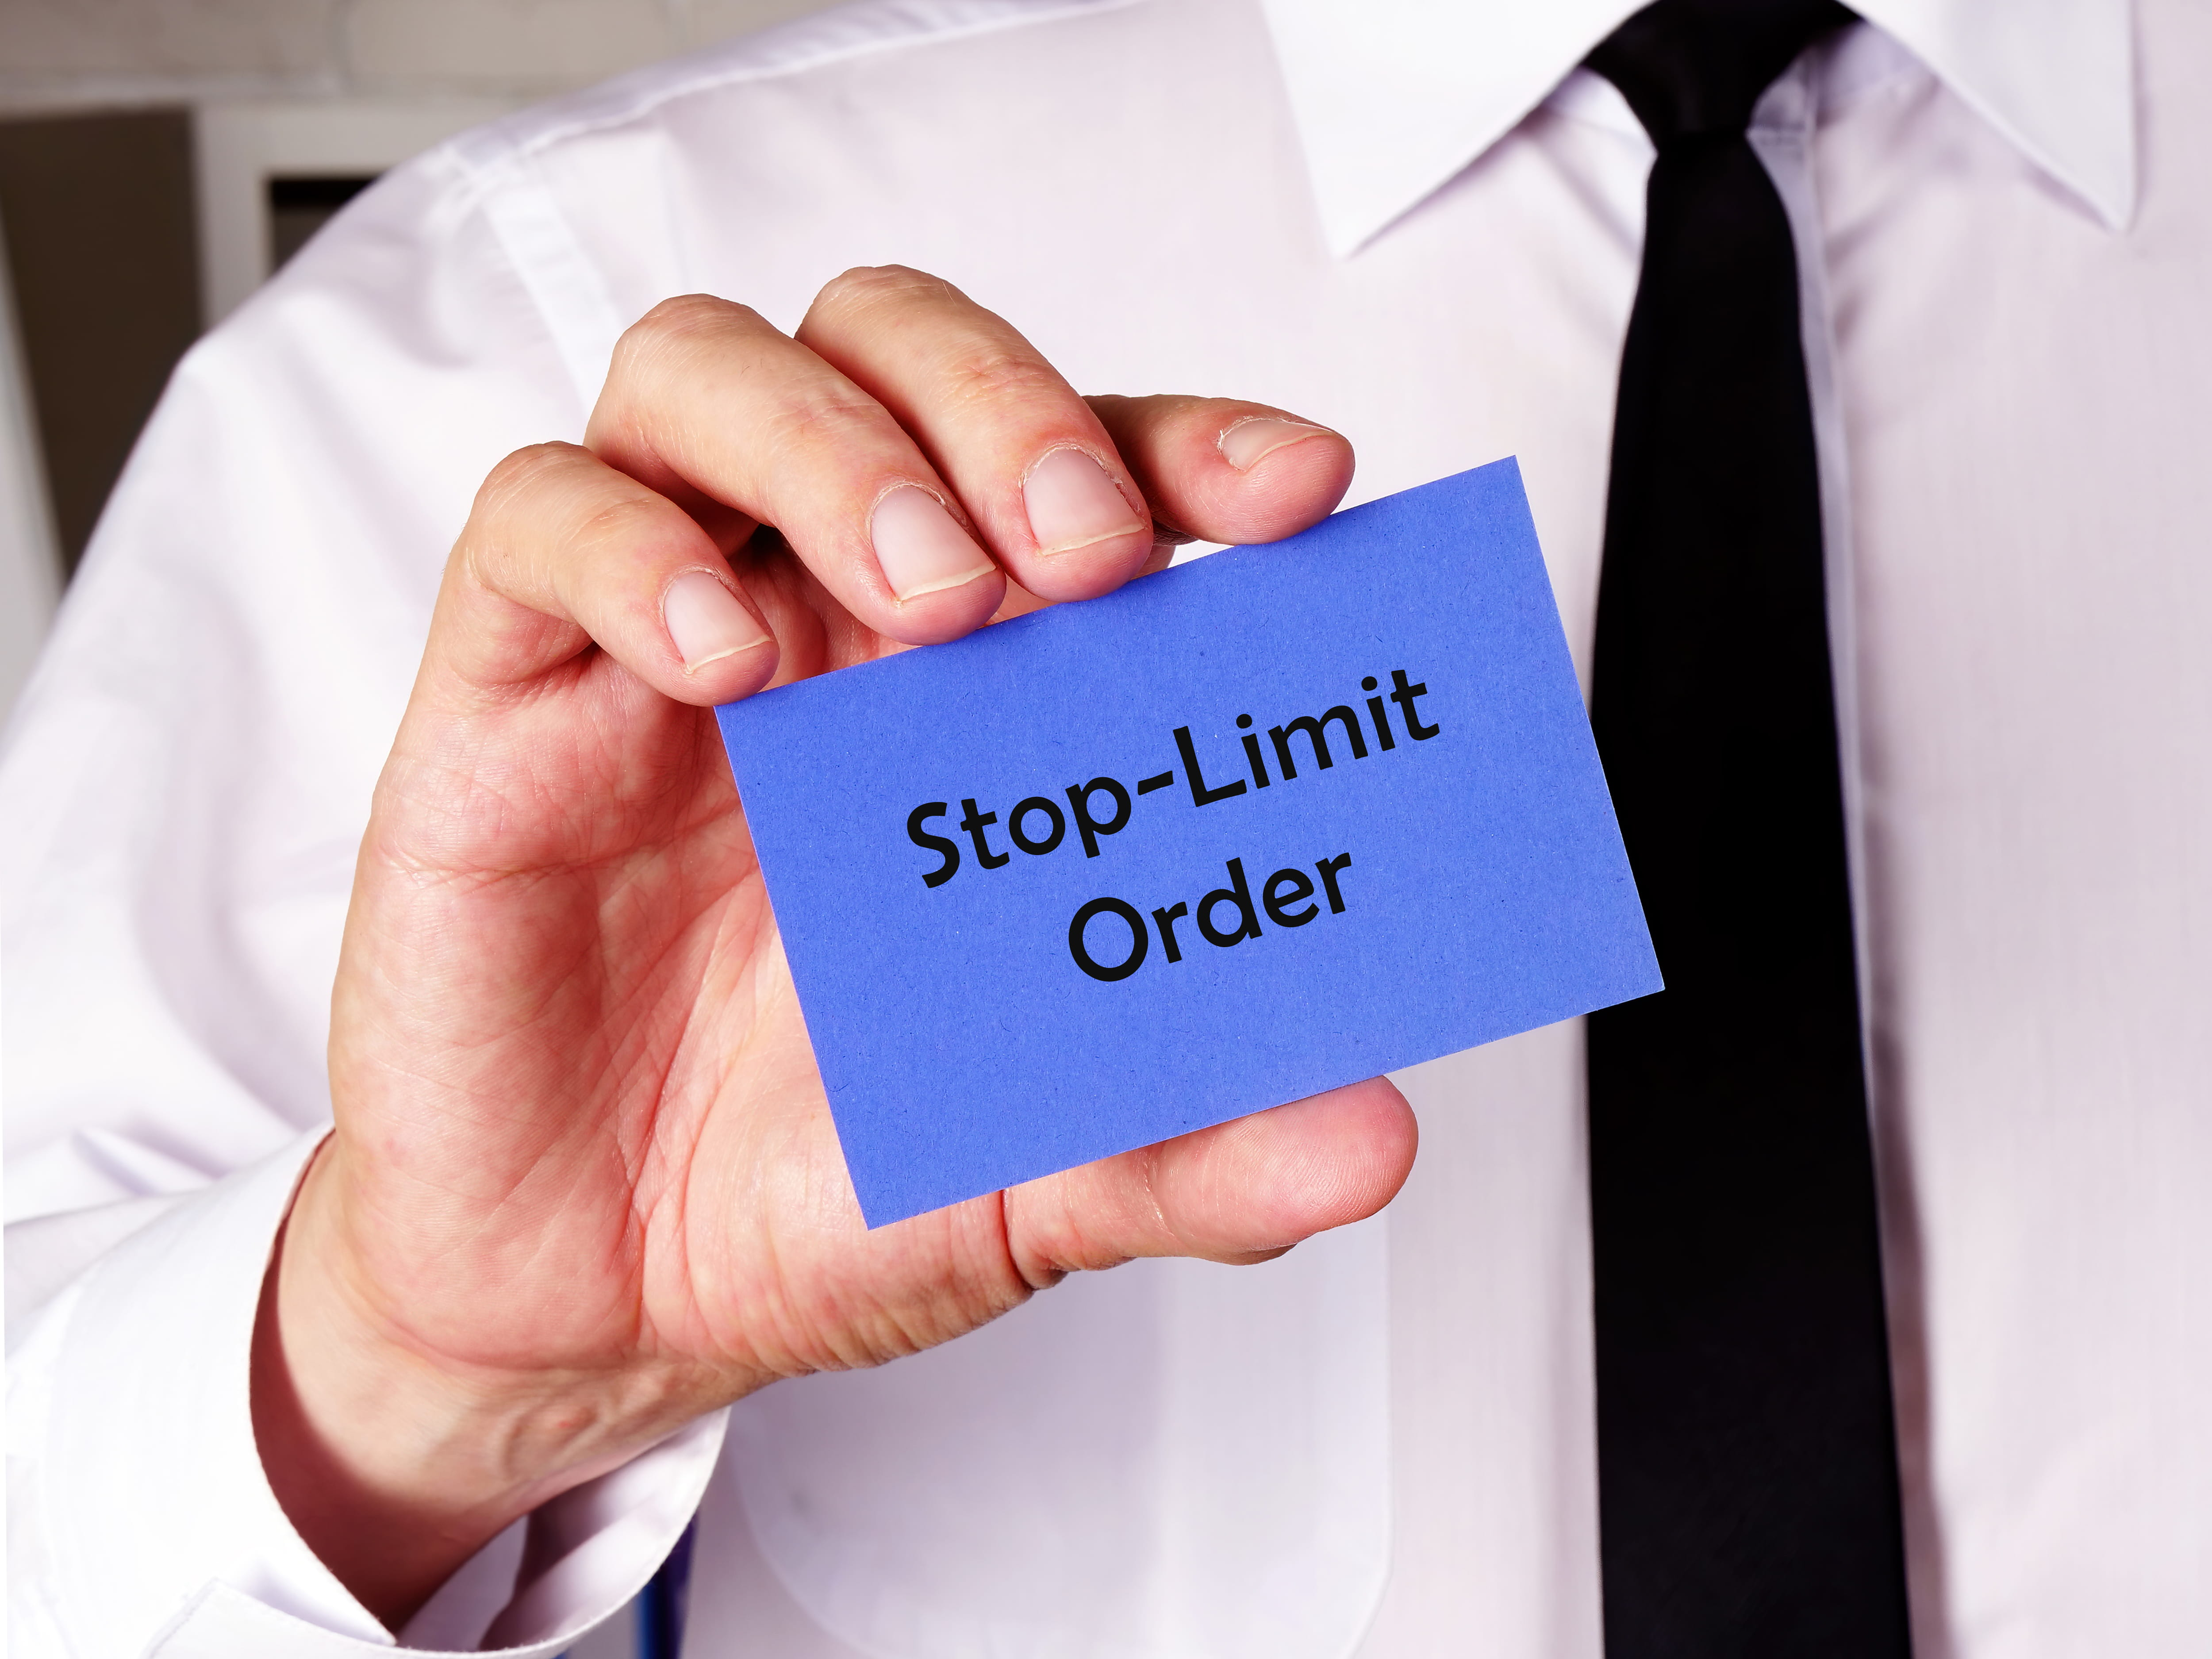 business man holding blue card with stop-limit order written on it